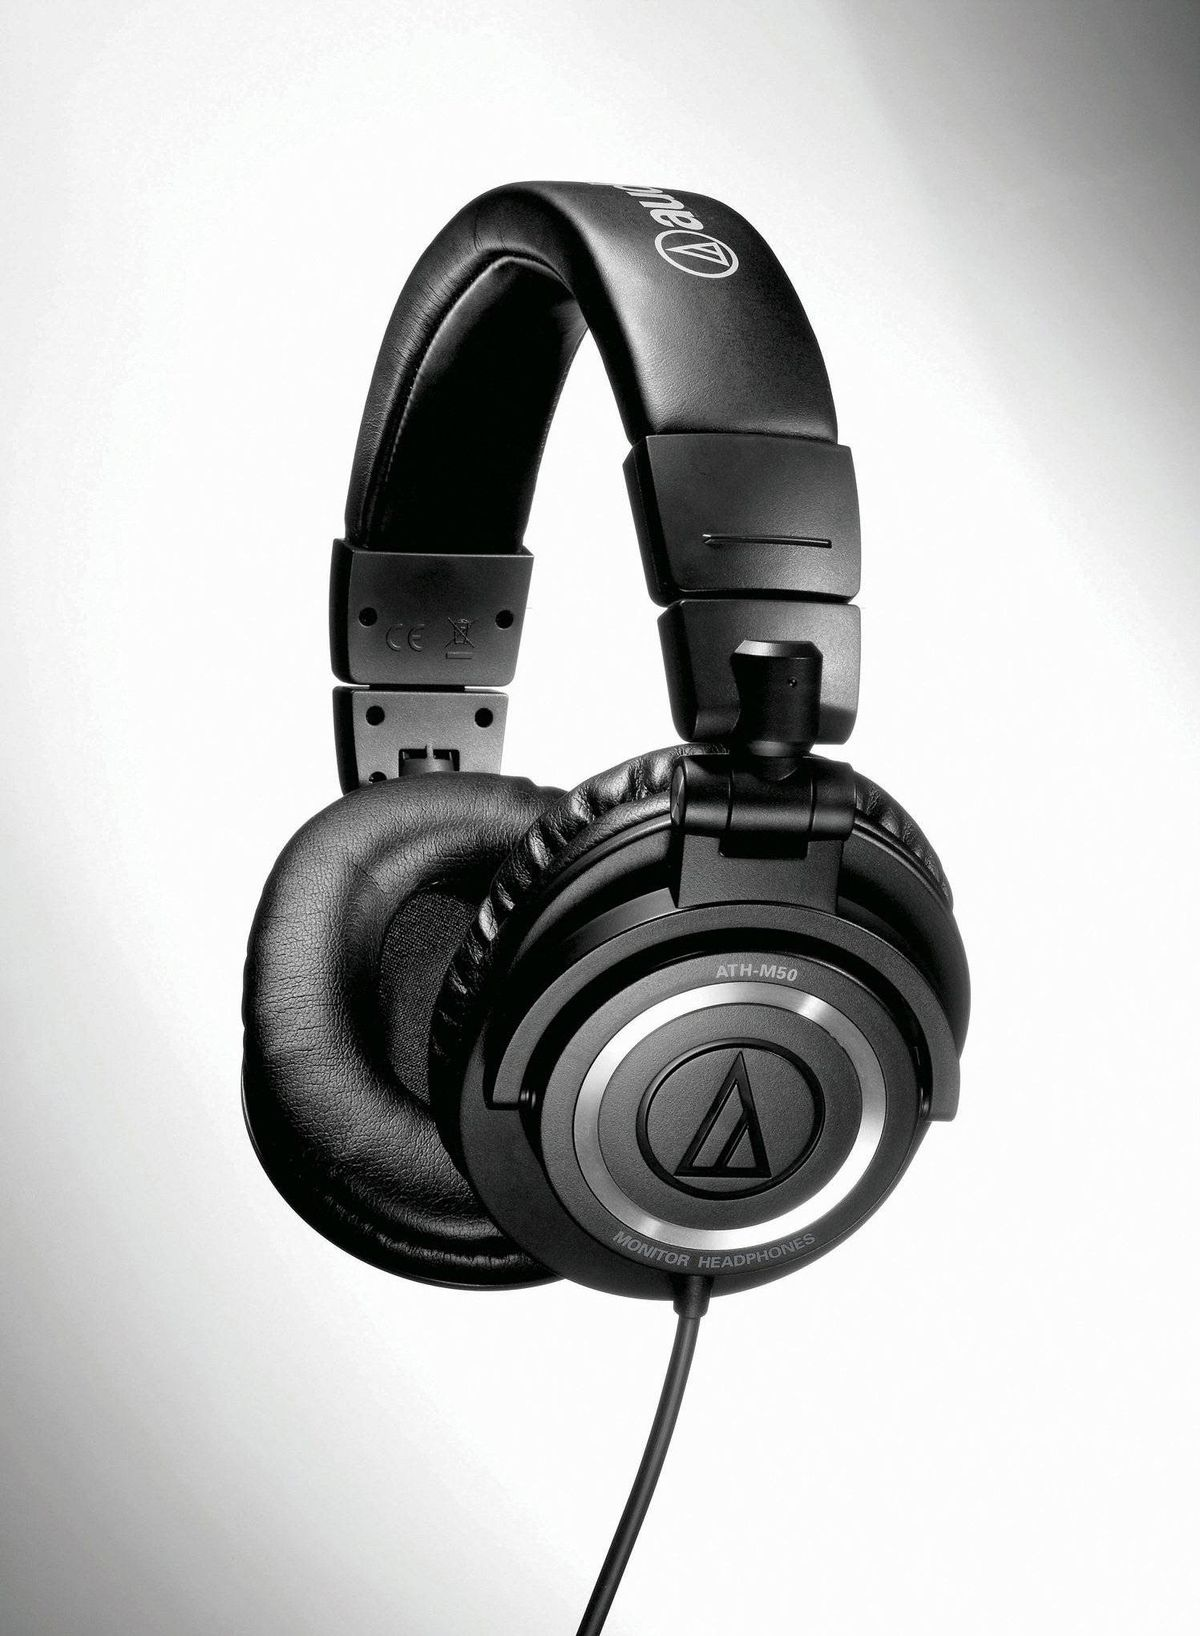 Audiophile's choice: Audio-Technica ATH-M50 ($179.99) Like being in a recording studio, in the dark. Sound: Easily the best value for money. Crisp highs, warm mids, clear bass. Tunes: Everything sounds good on them, though bass addicts may miss the over-the-top thump of less precise units. Looks: Dull as dishwater. But if all you care about is audio, search no further.